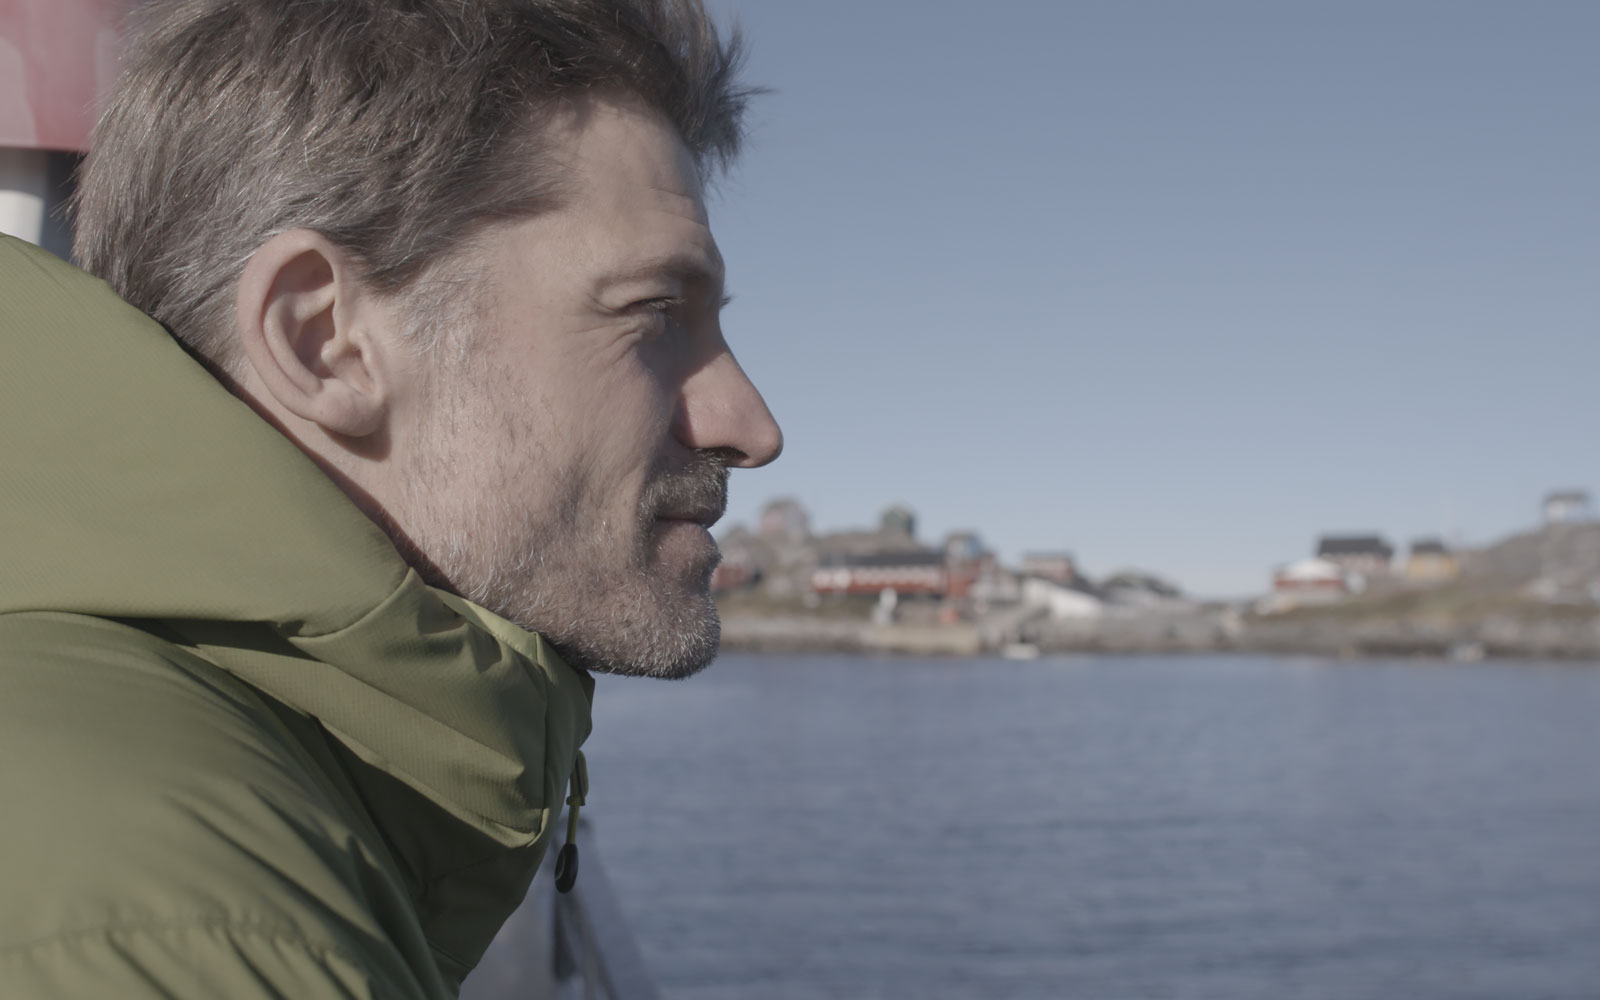 Nikolaj Coster-Waldau teamed up with Google Maps to highlight climate change in Greenland.